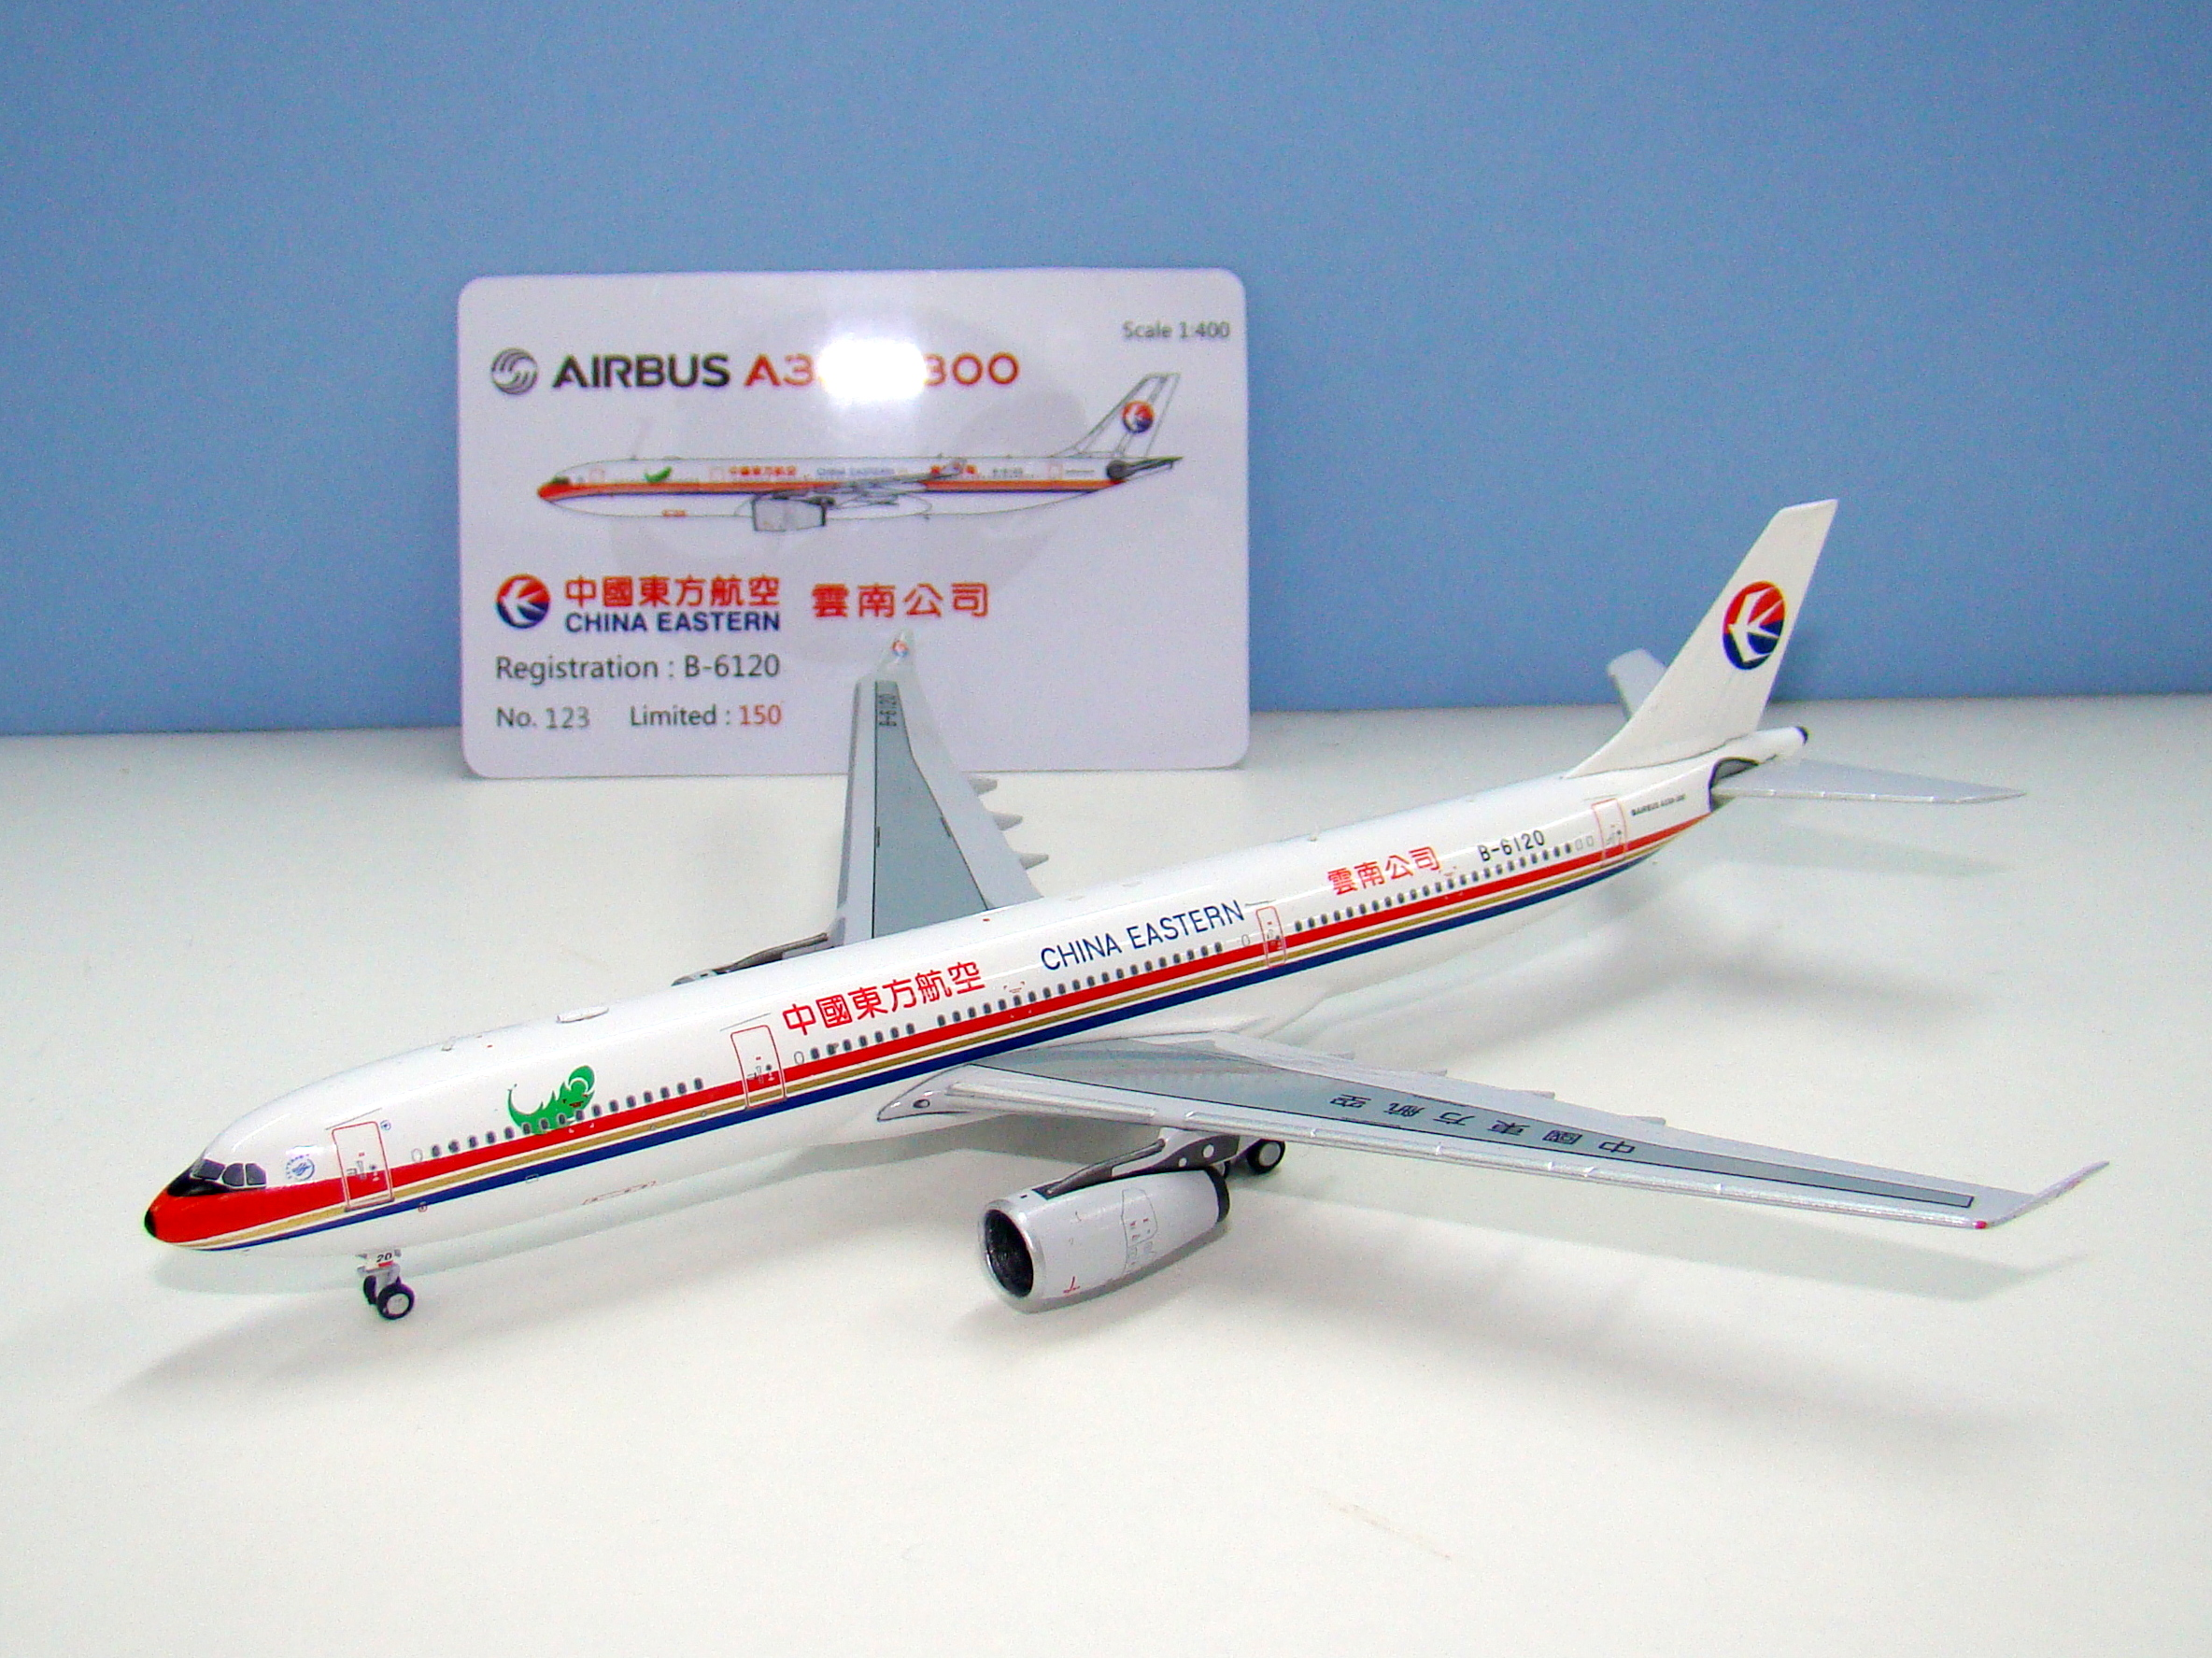 China Eastern Airbus A330-343X B-1620 Skywings 1:400 Scale Model Airliner